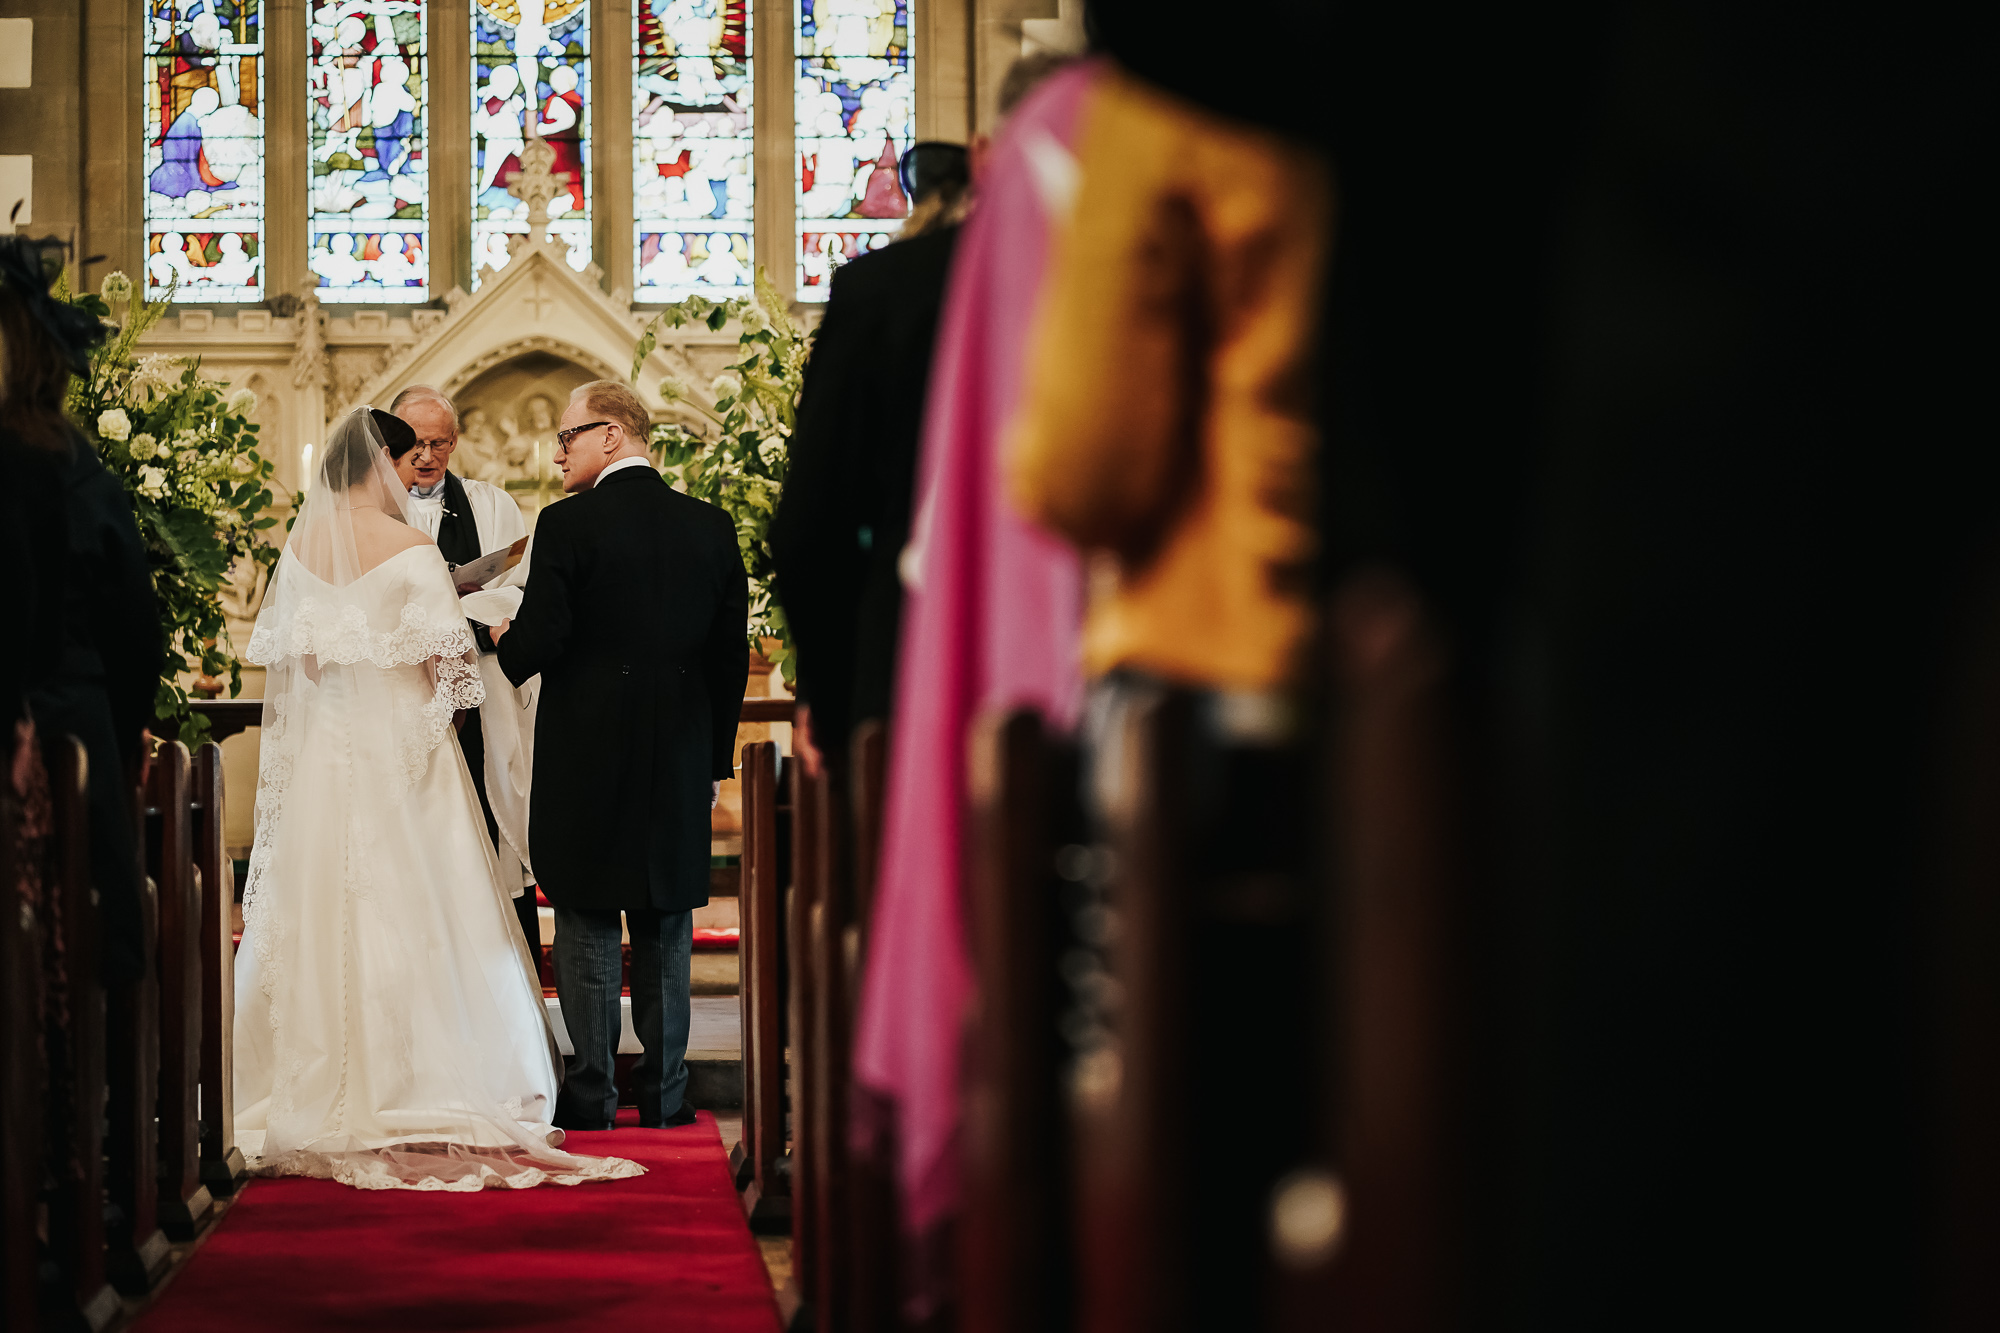 Cheshire wedding at home wedding photography (18 of 49).jpg